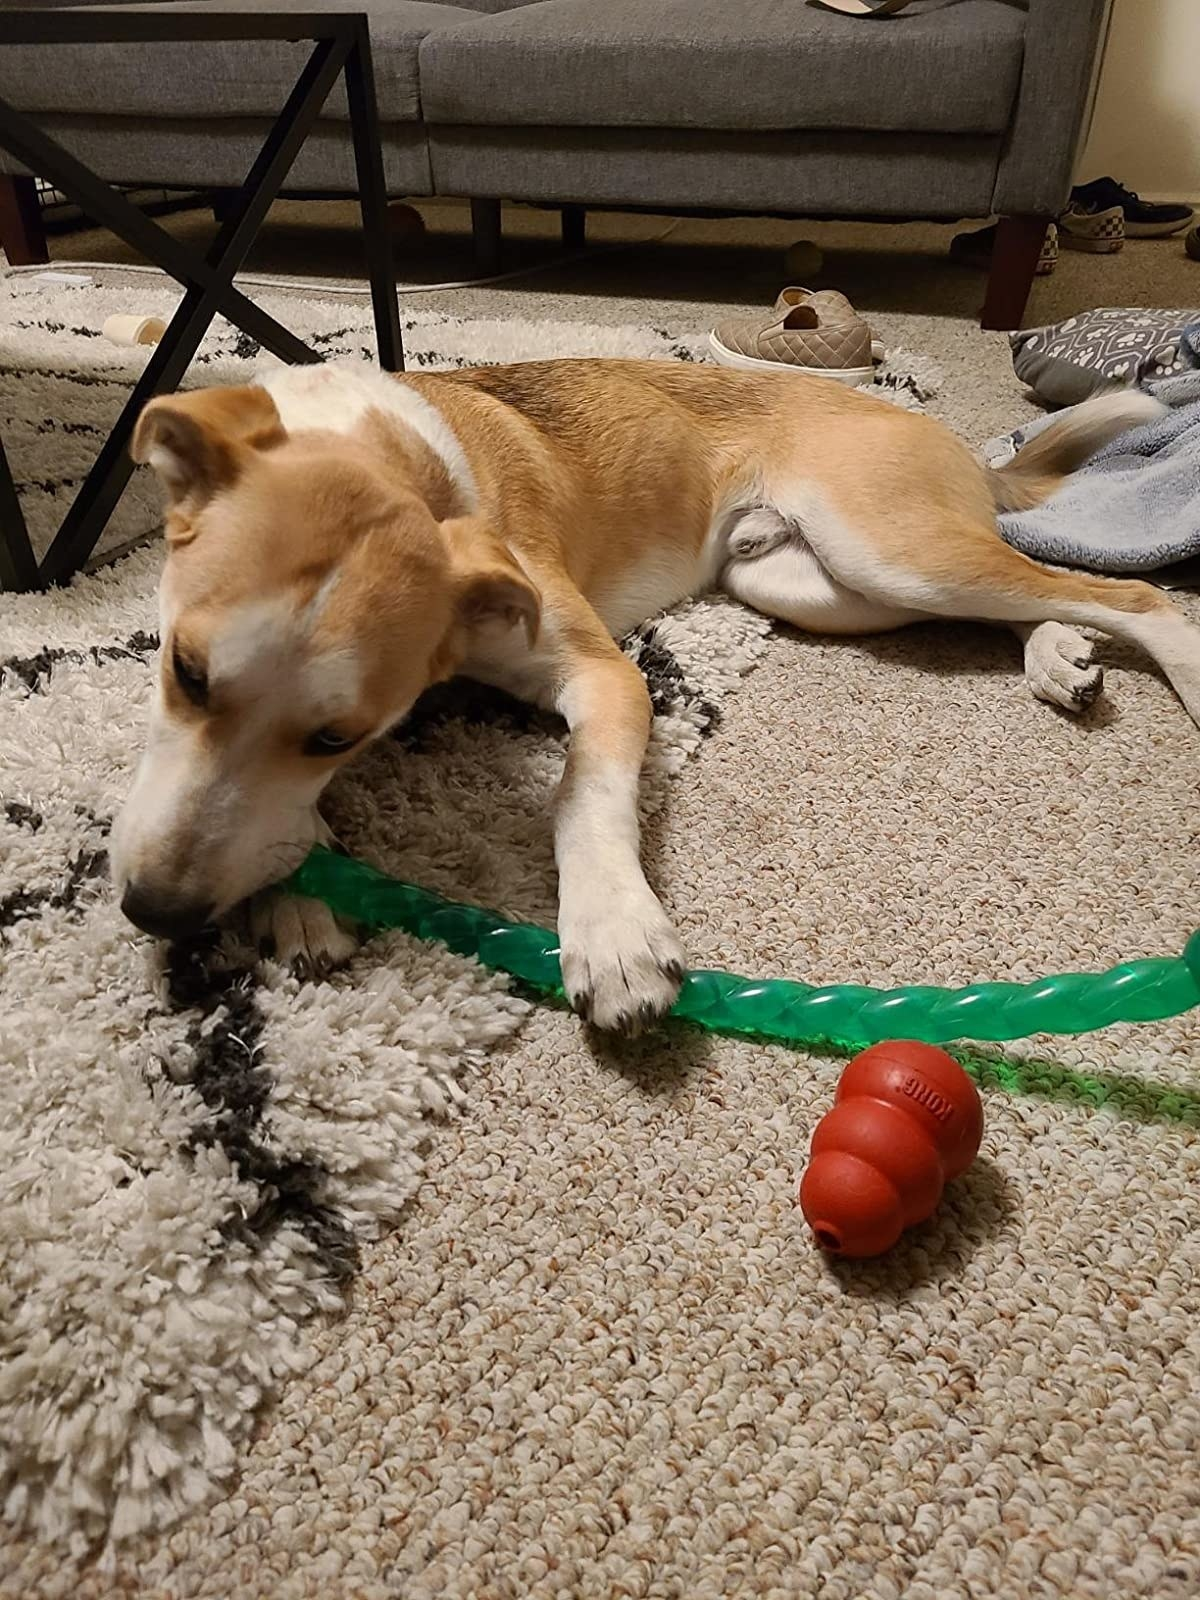 Reviewer's photo of their dog chewing on the green rope